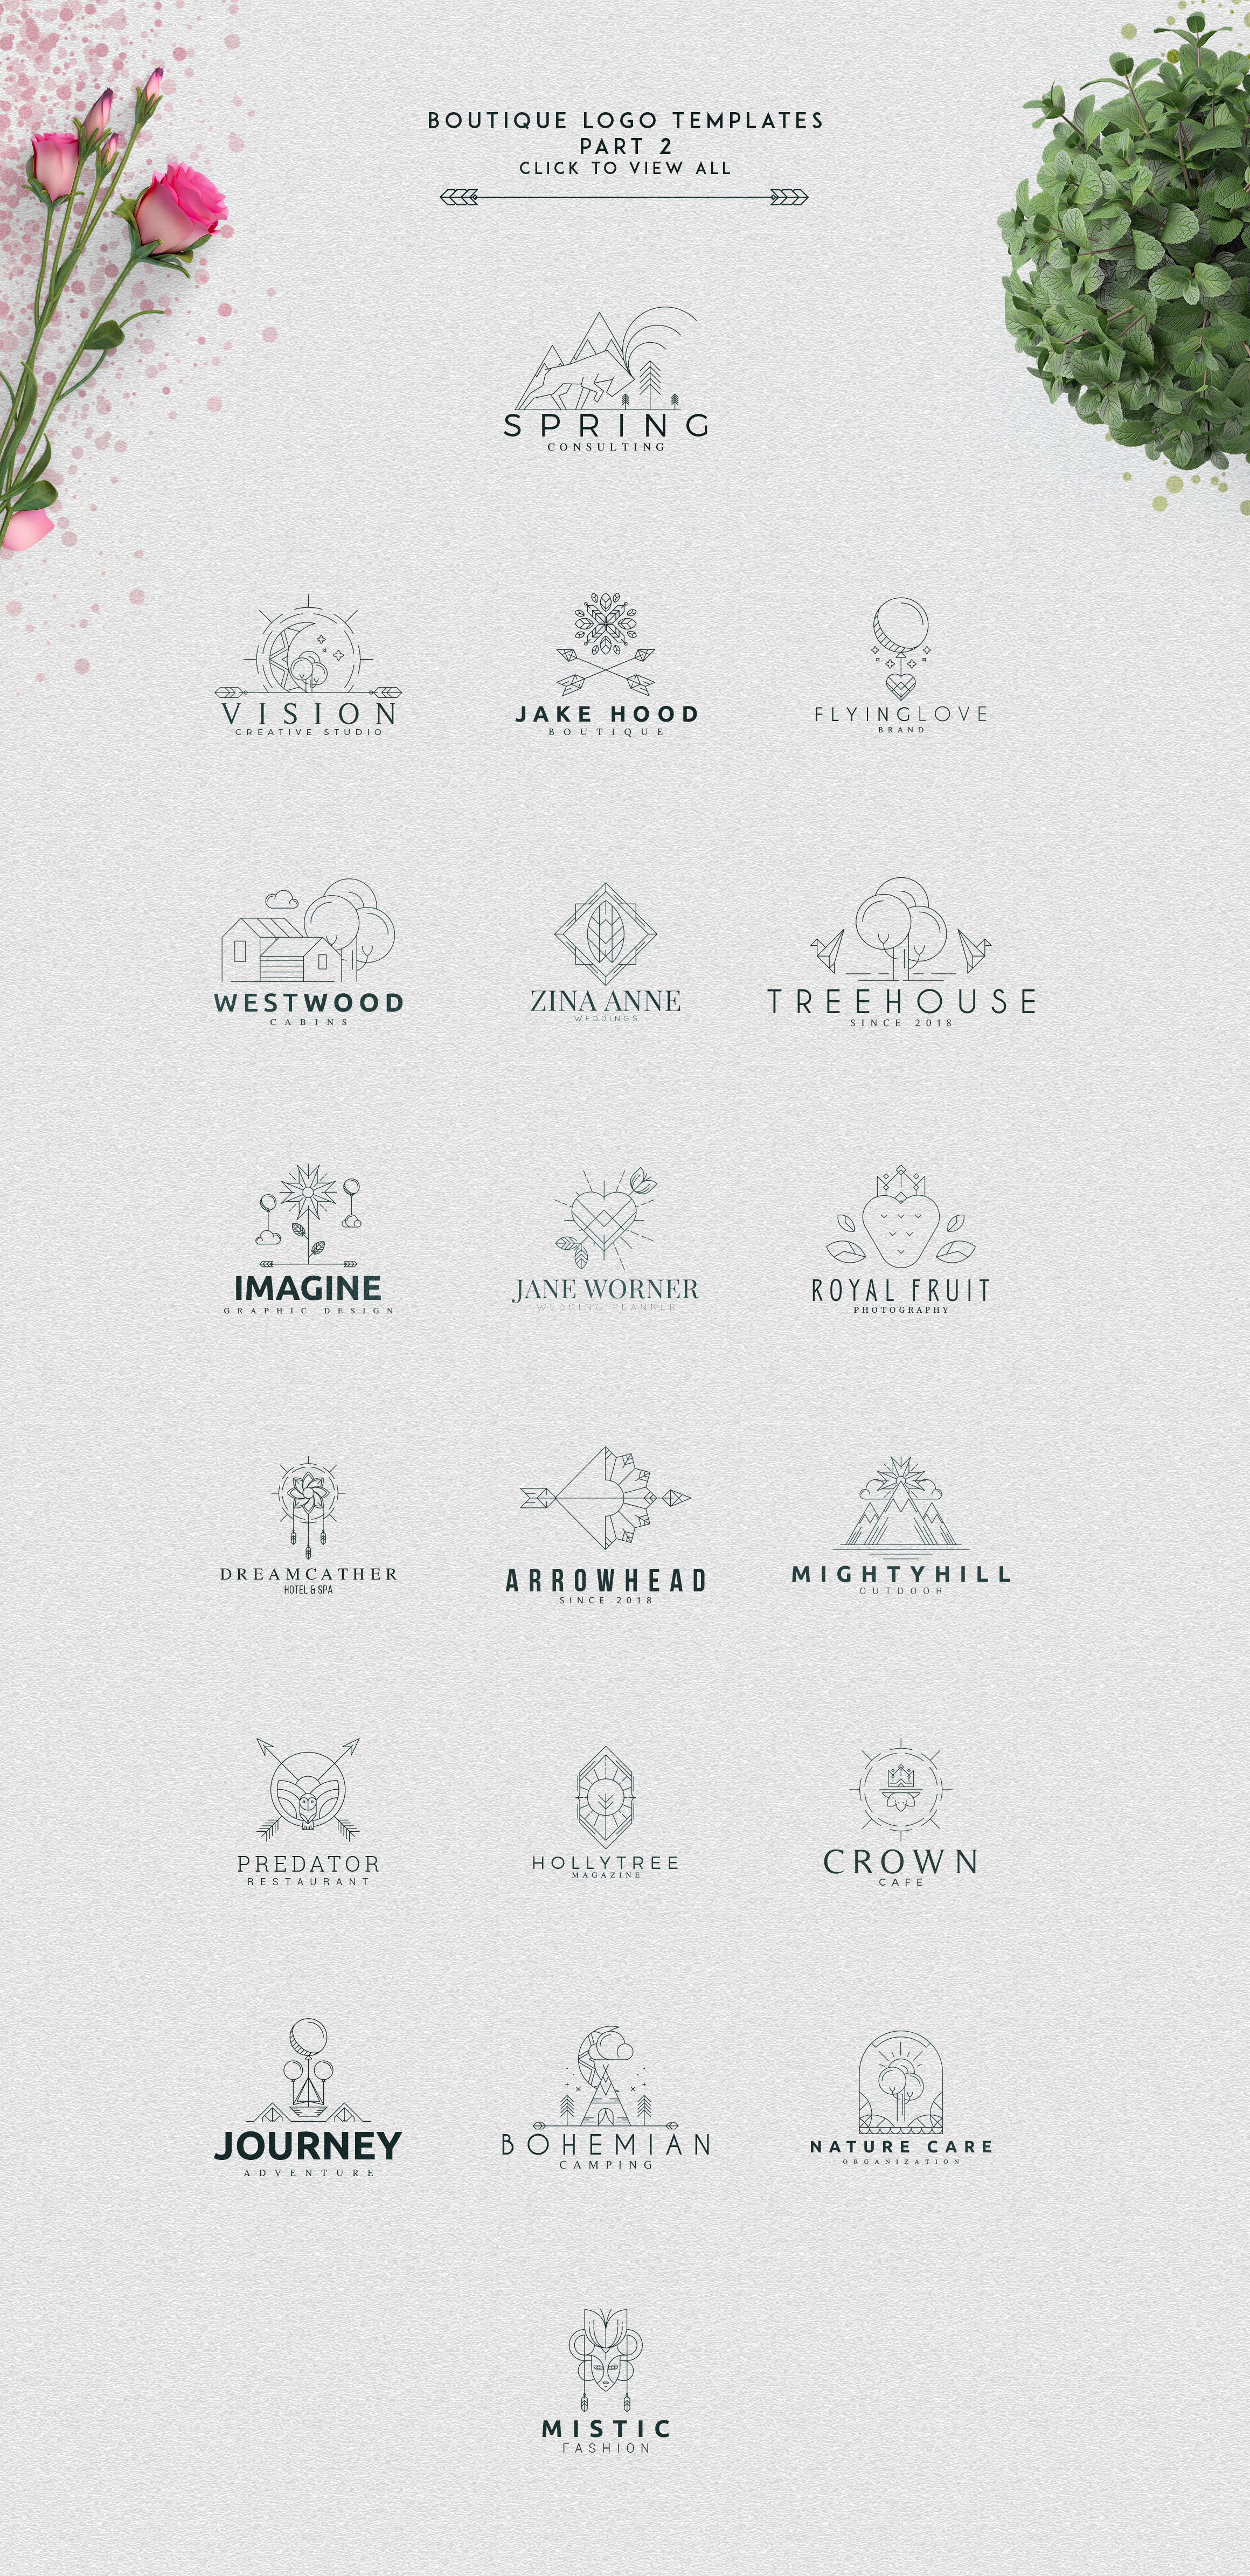 [Spring Vibes] 40 Boutique Logos example image 12